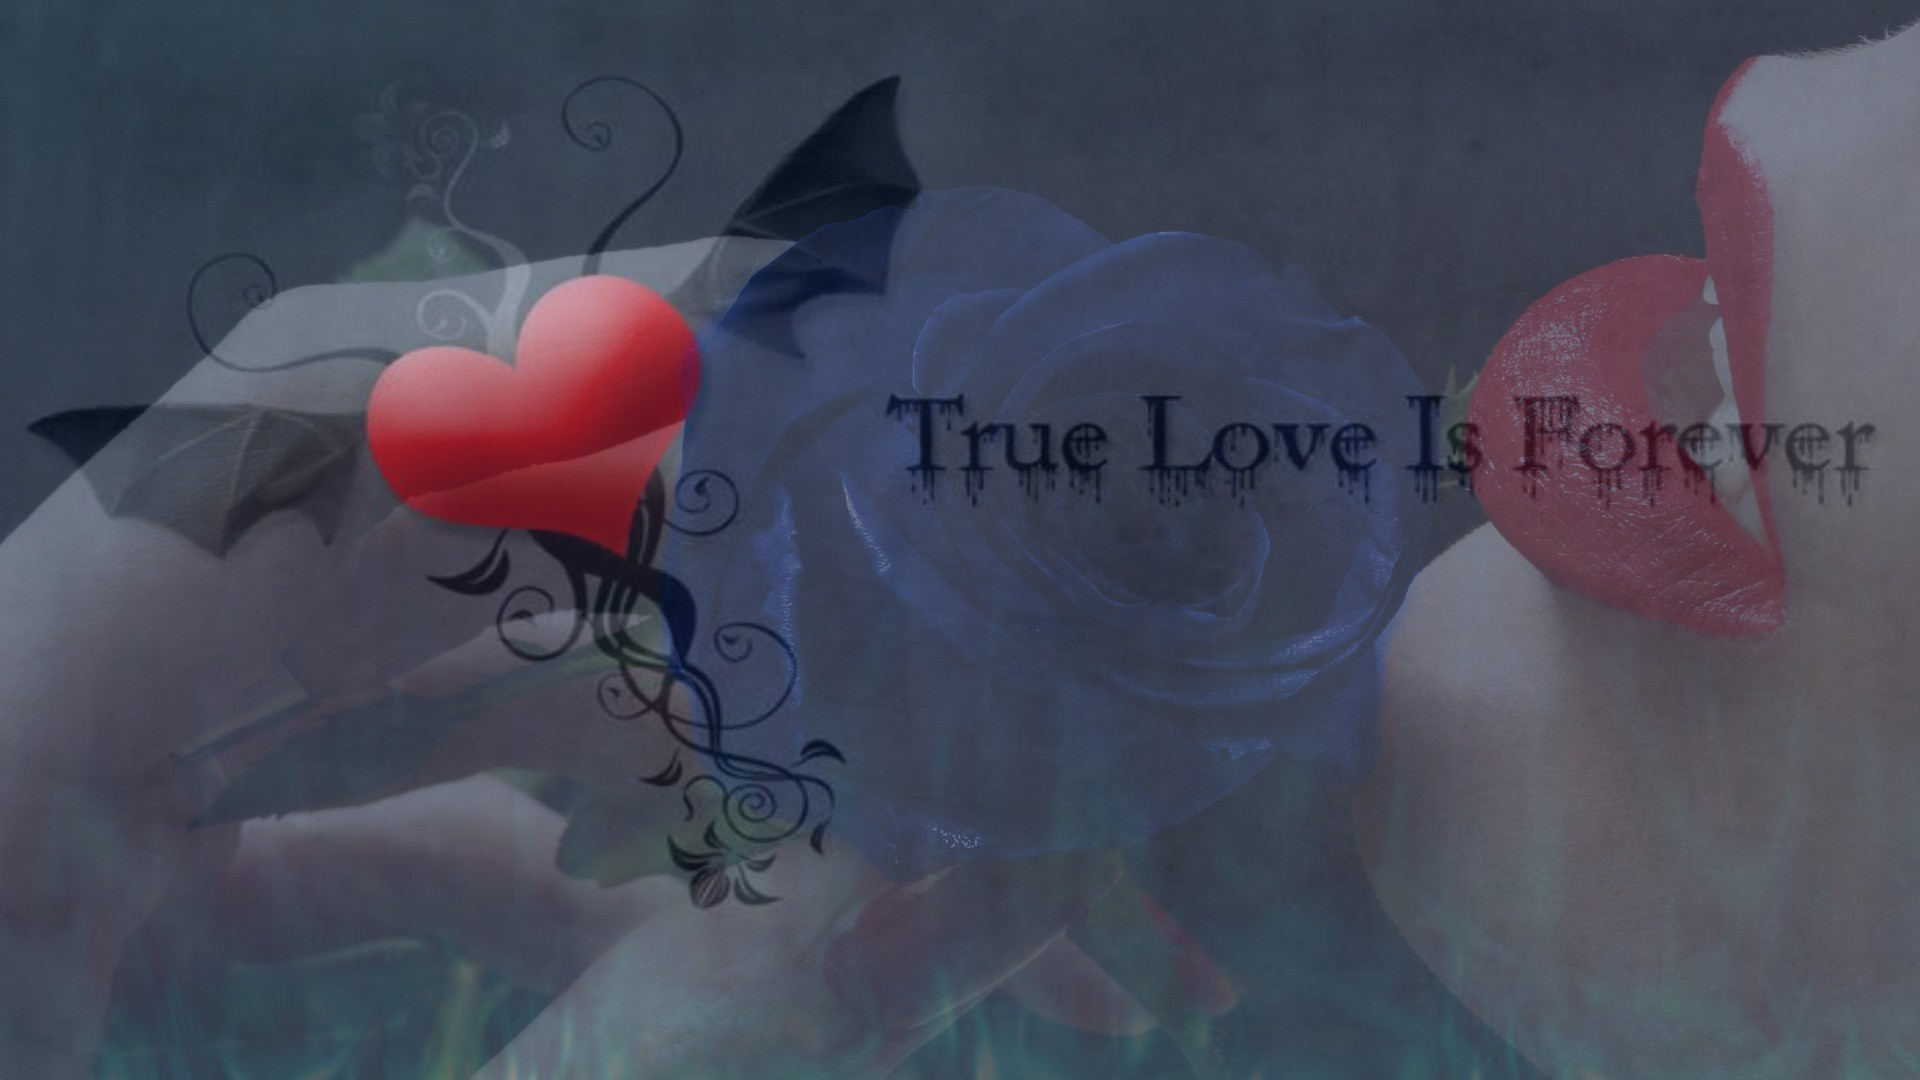 1920x1080 True love is forever wallpaper